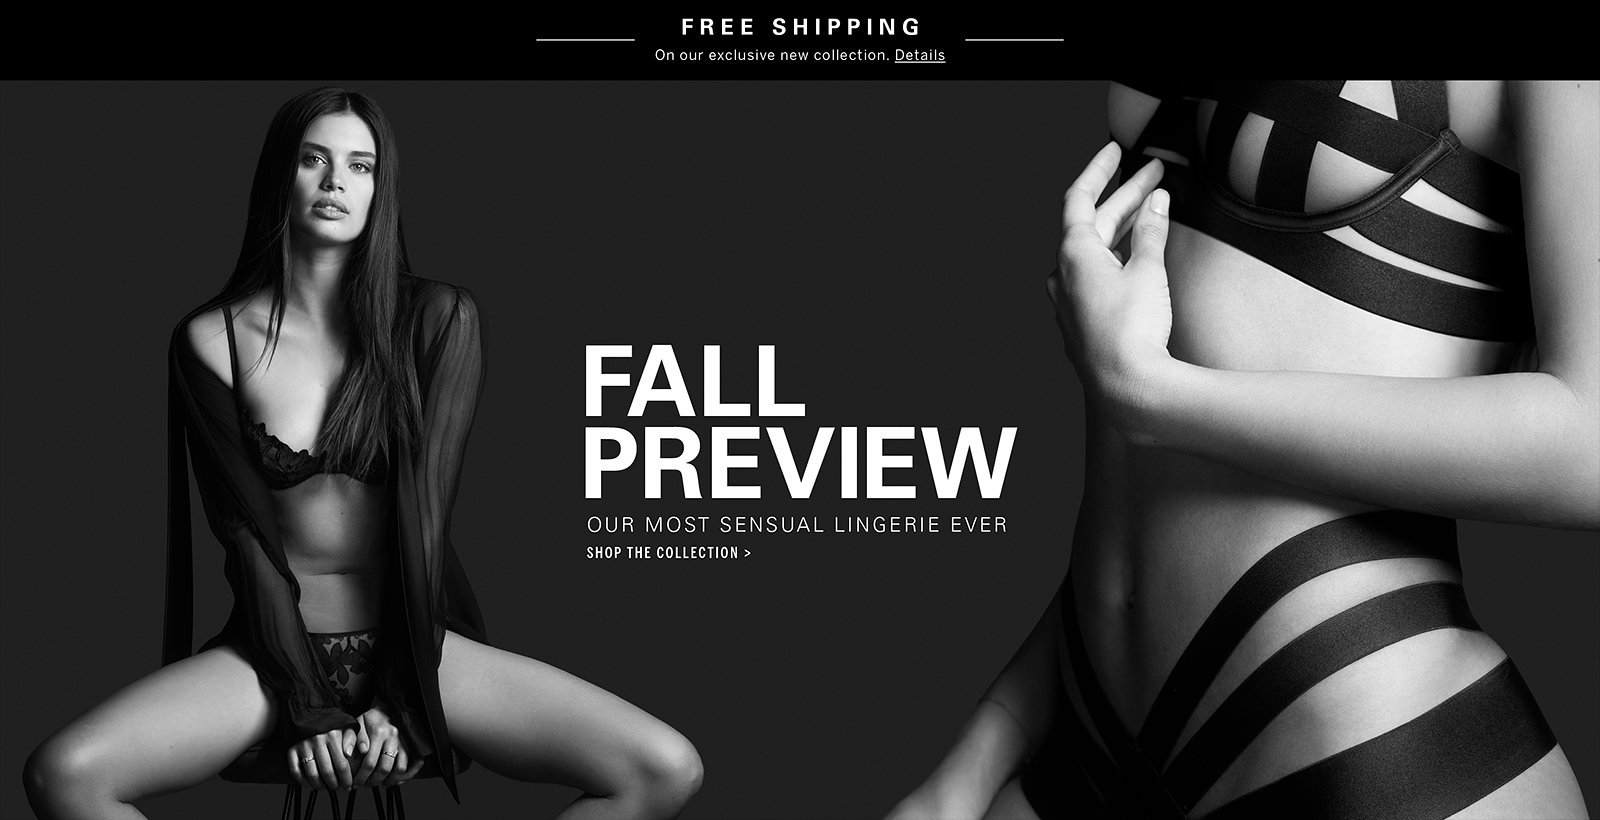 Fall Preview. Our most sensual lingerie ever. Shop the Collection